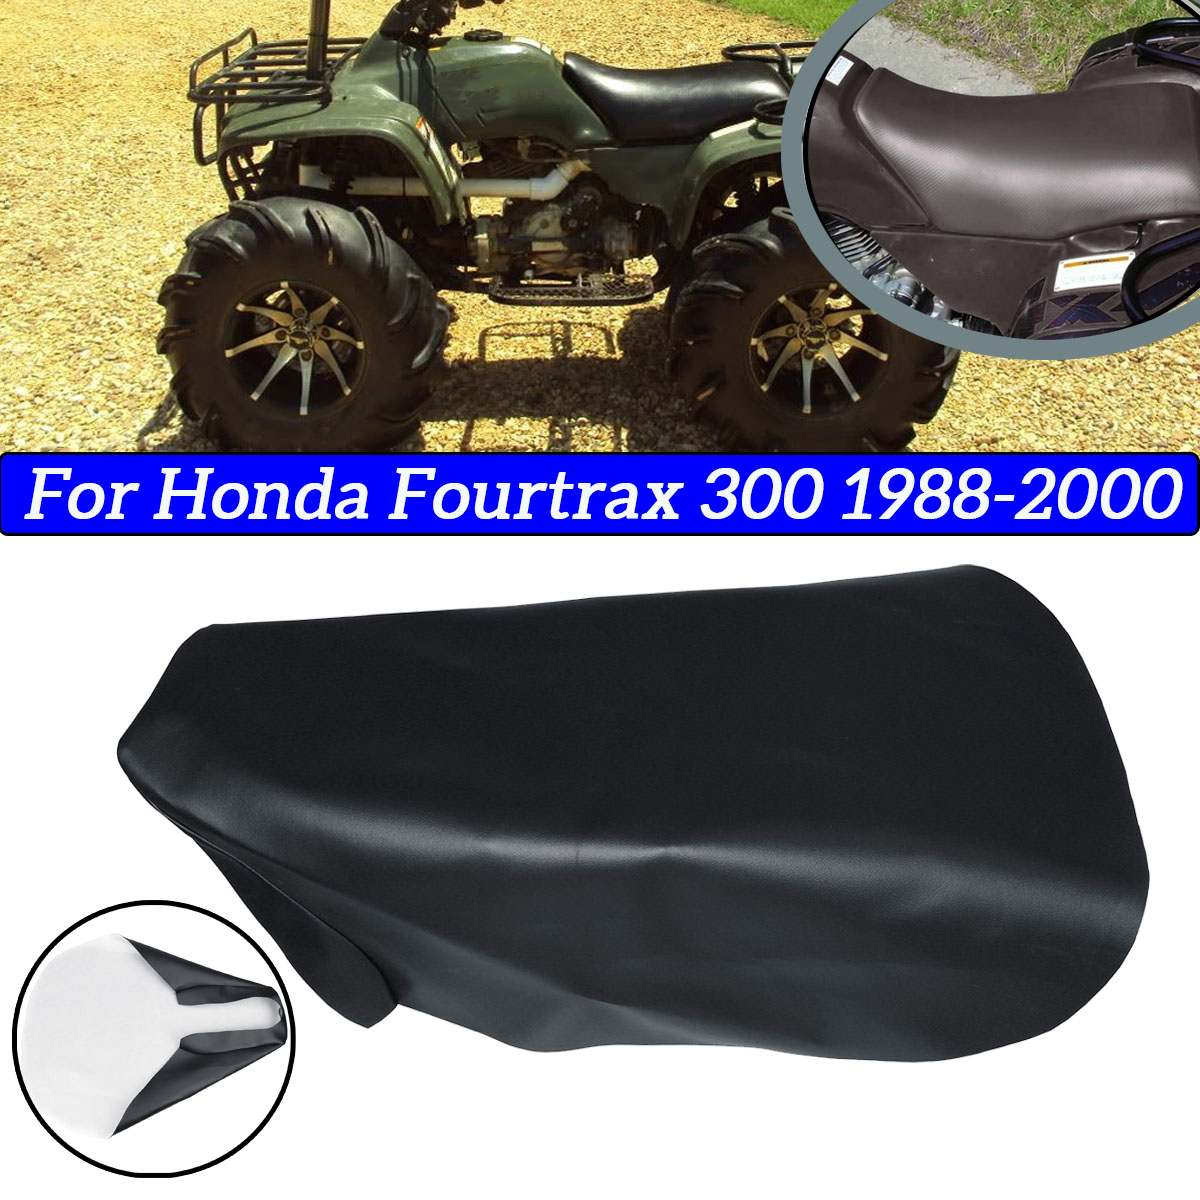 Motorcycle ATV Seat Cover Protect Pad PU Leather Black Seat Cushion Cover For Honda Fourtrax 300 1988-2000